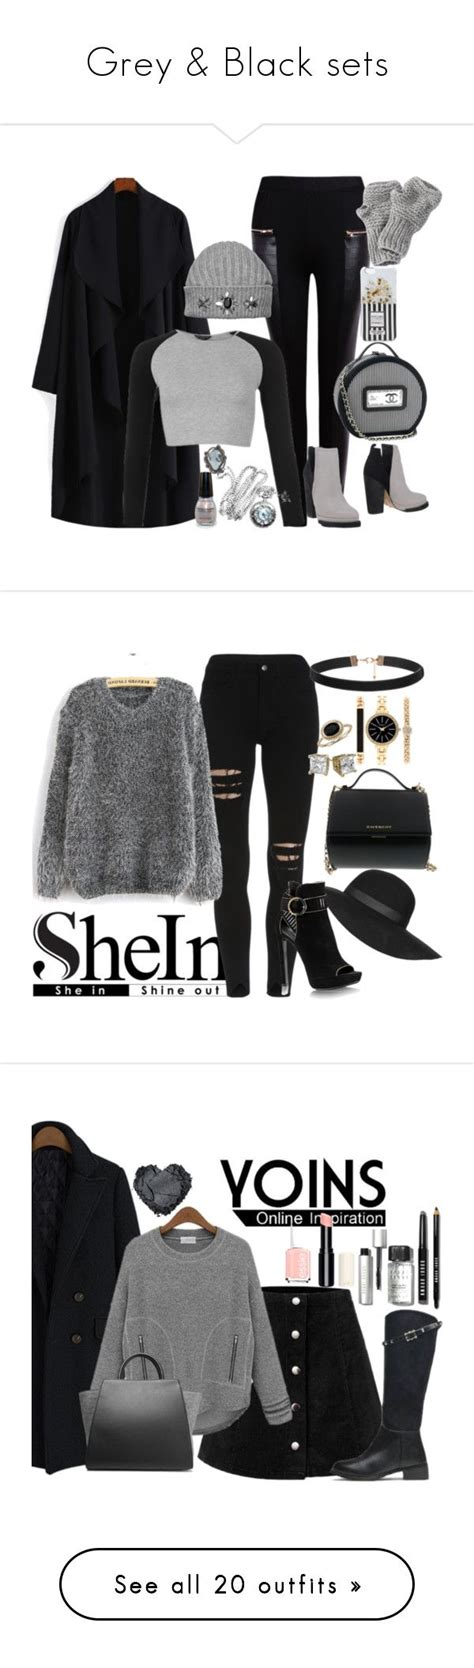 Set Chanel Grey Kid quot grey black sets quot by fashion liked on polyvore